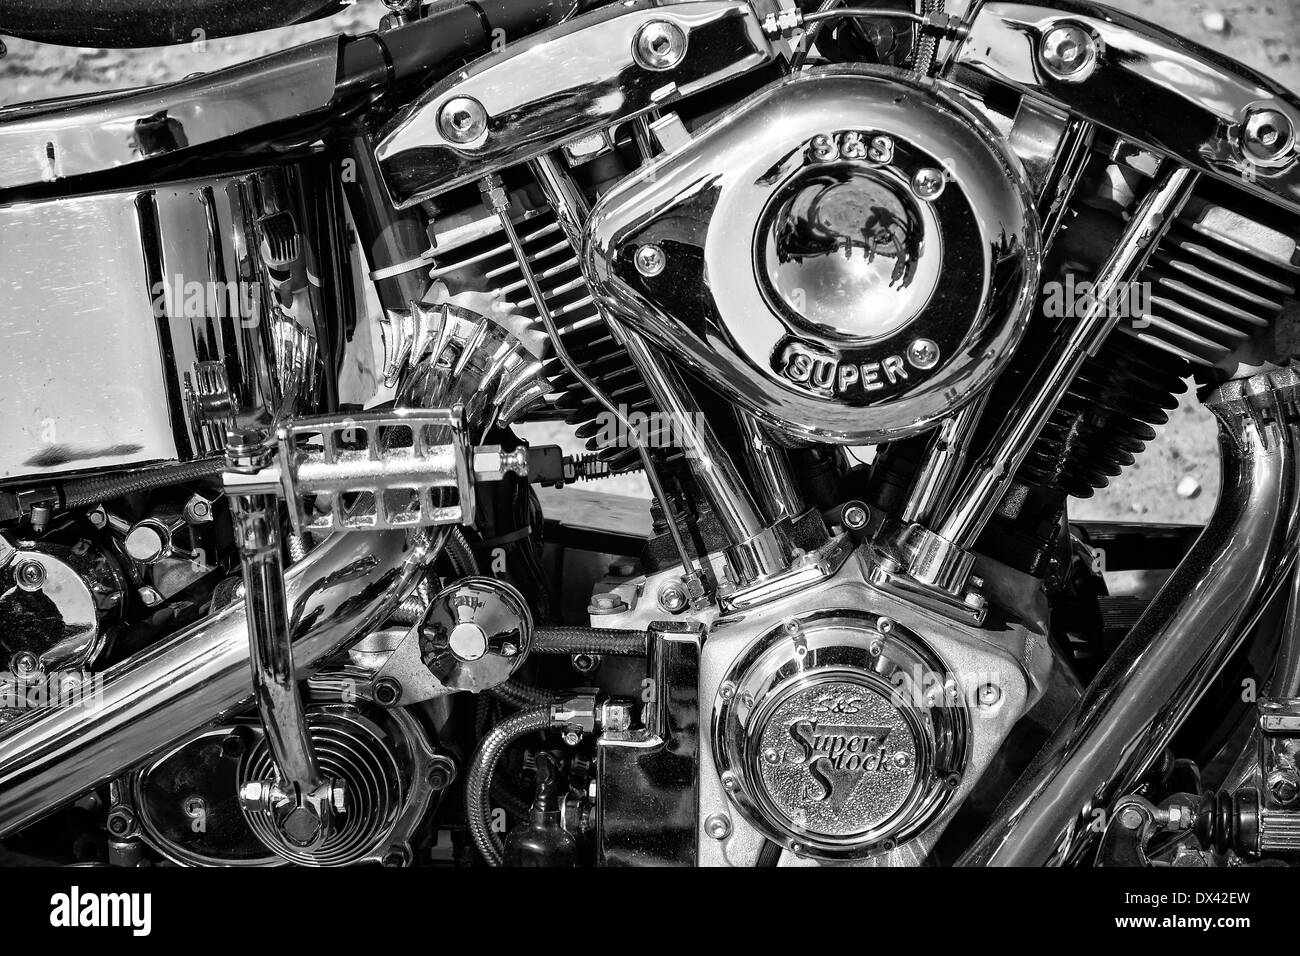 Sell My Motorcycle >> Motorcycle Engine Harley Davidson Custom Chopper, black and white Stock Photo: 67701953 - Alamy